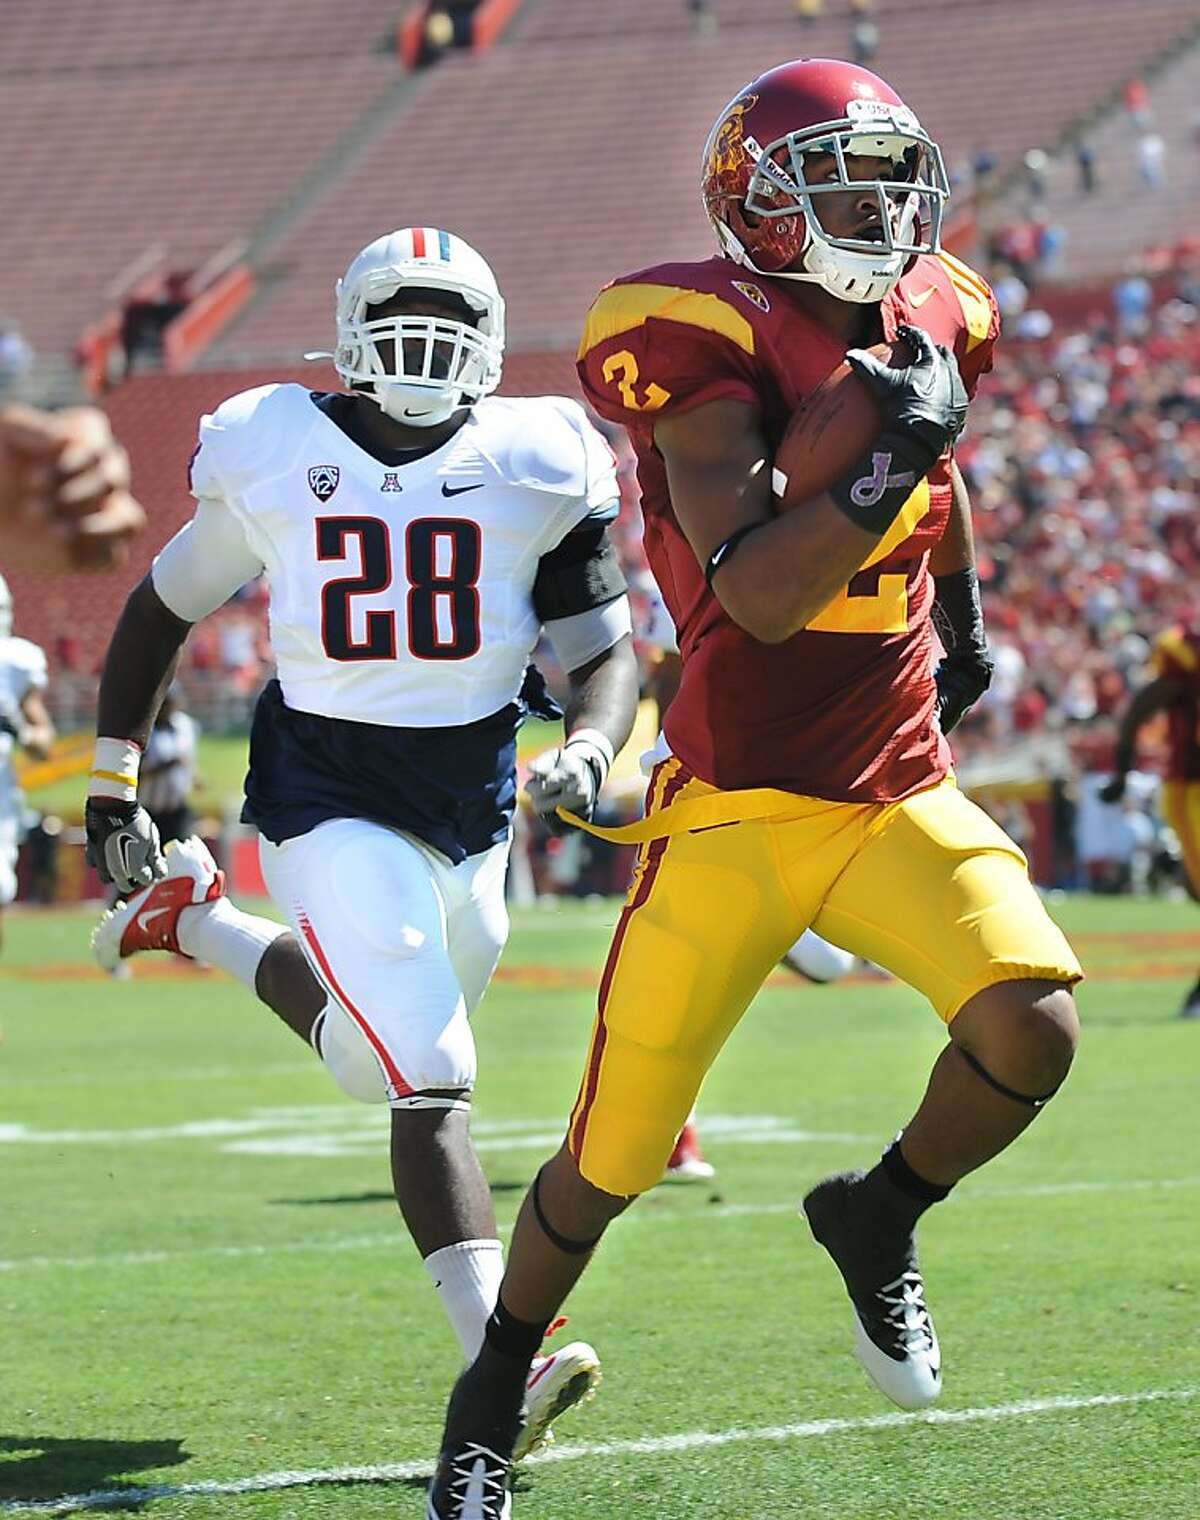 University of Southern California receiver Robert Woods, right, beats Arizona defensive end C.J. Parish to the end zone for an 82-yard touchdown catch in the first quarter at the Los Angeles Coliseum in Los Angeles, California, on Saturday, October 1, 2011. USC outslugged Arizona, 48-41. (Wally Skalij/Los Angeles Times/MCT)